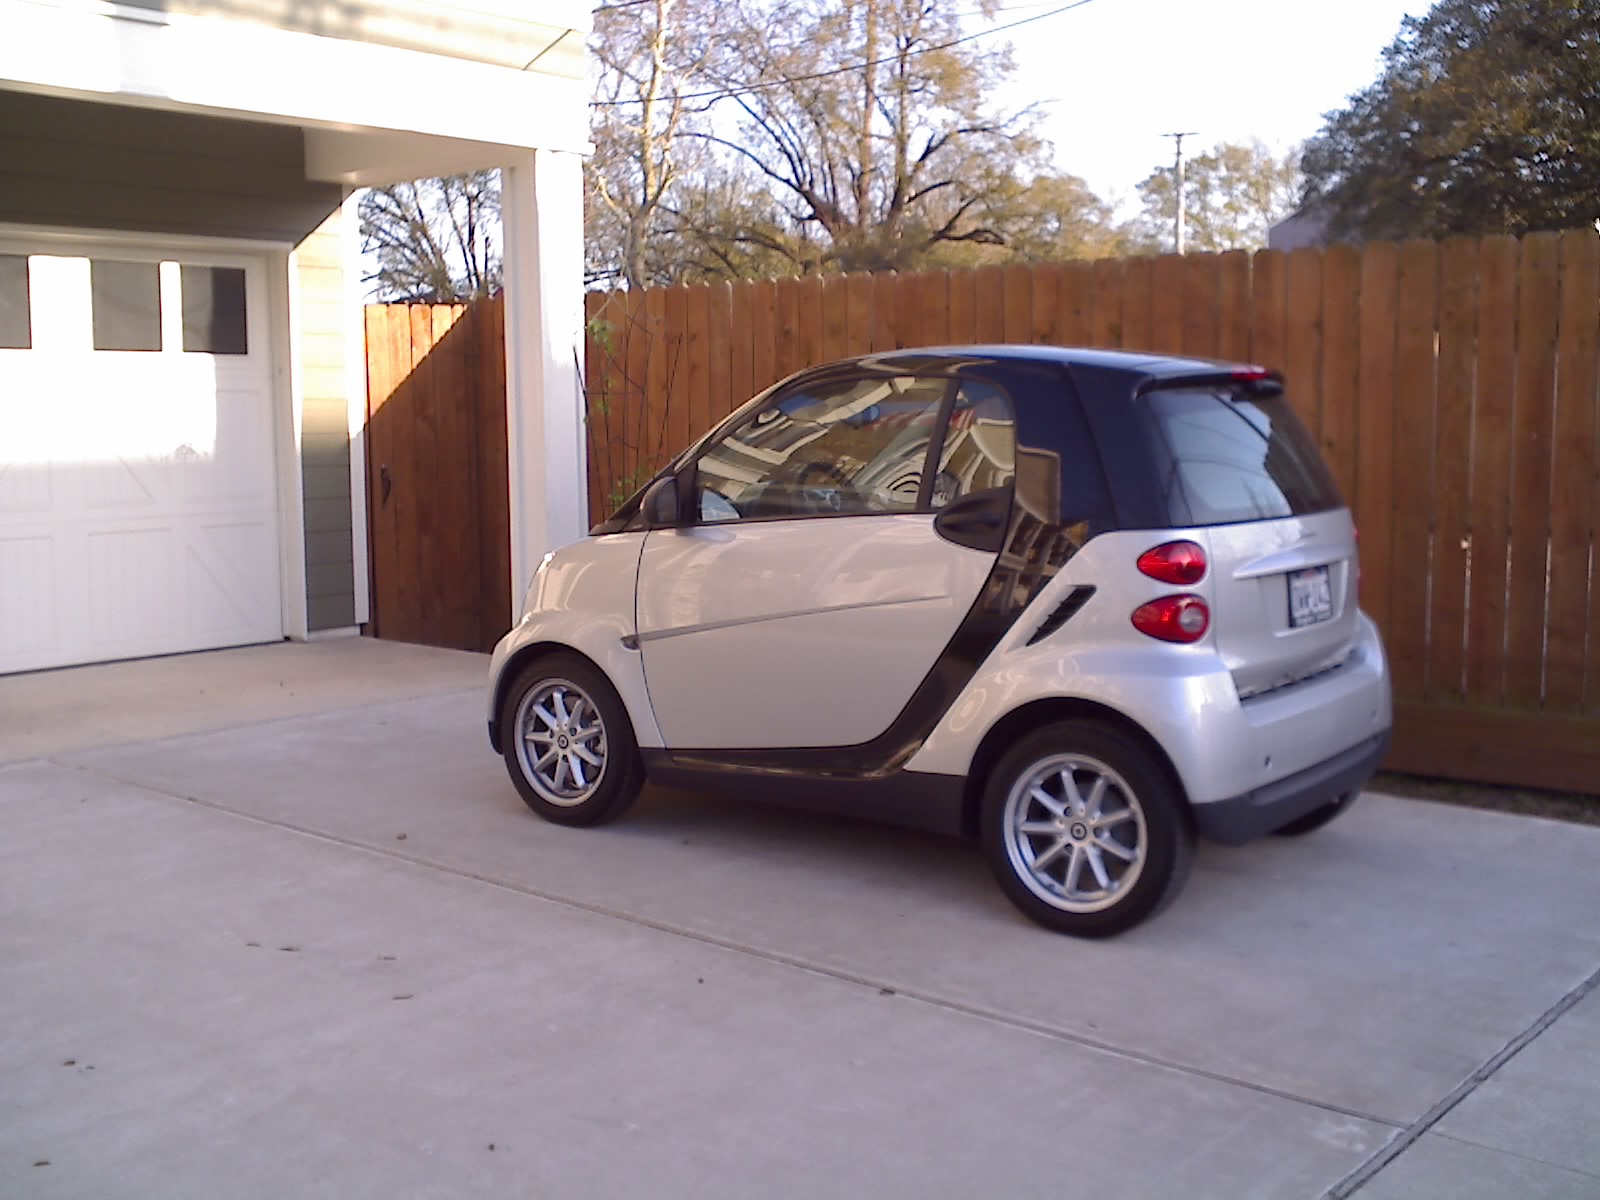 Smart fortwo in Texas – is this houston?